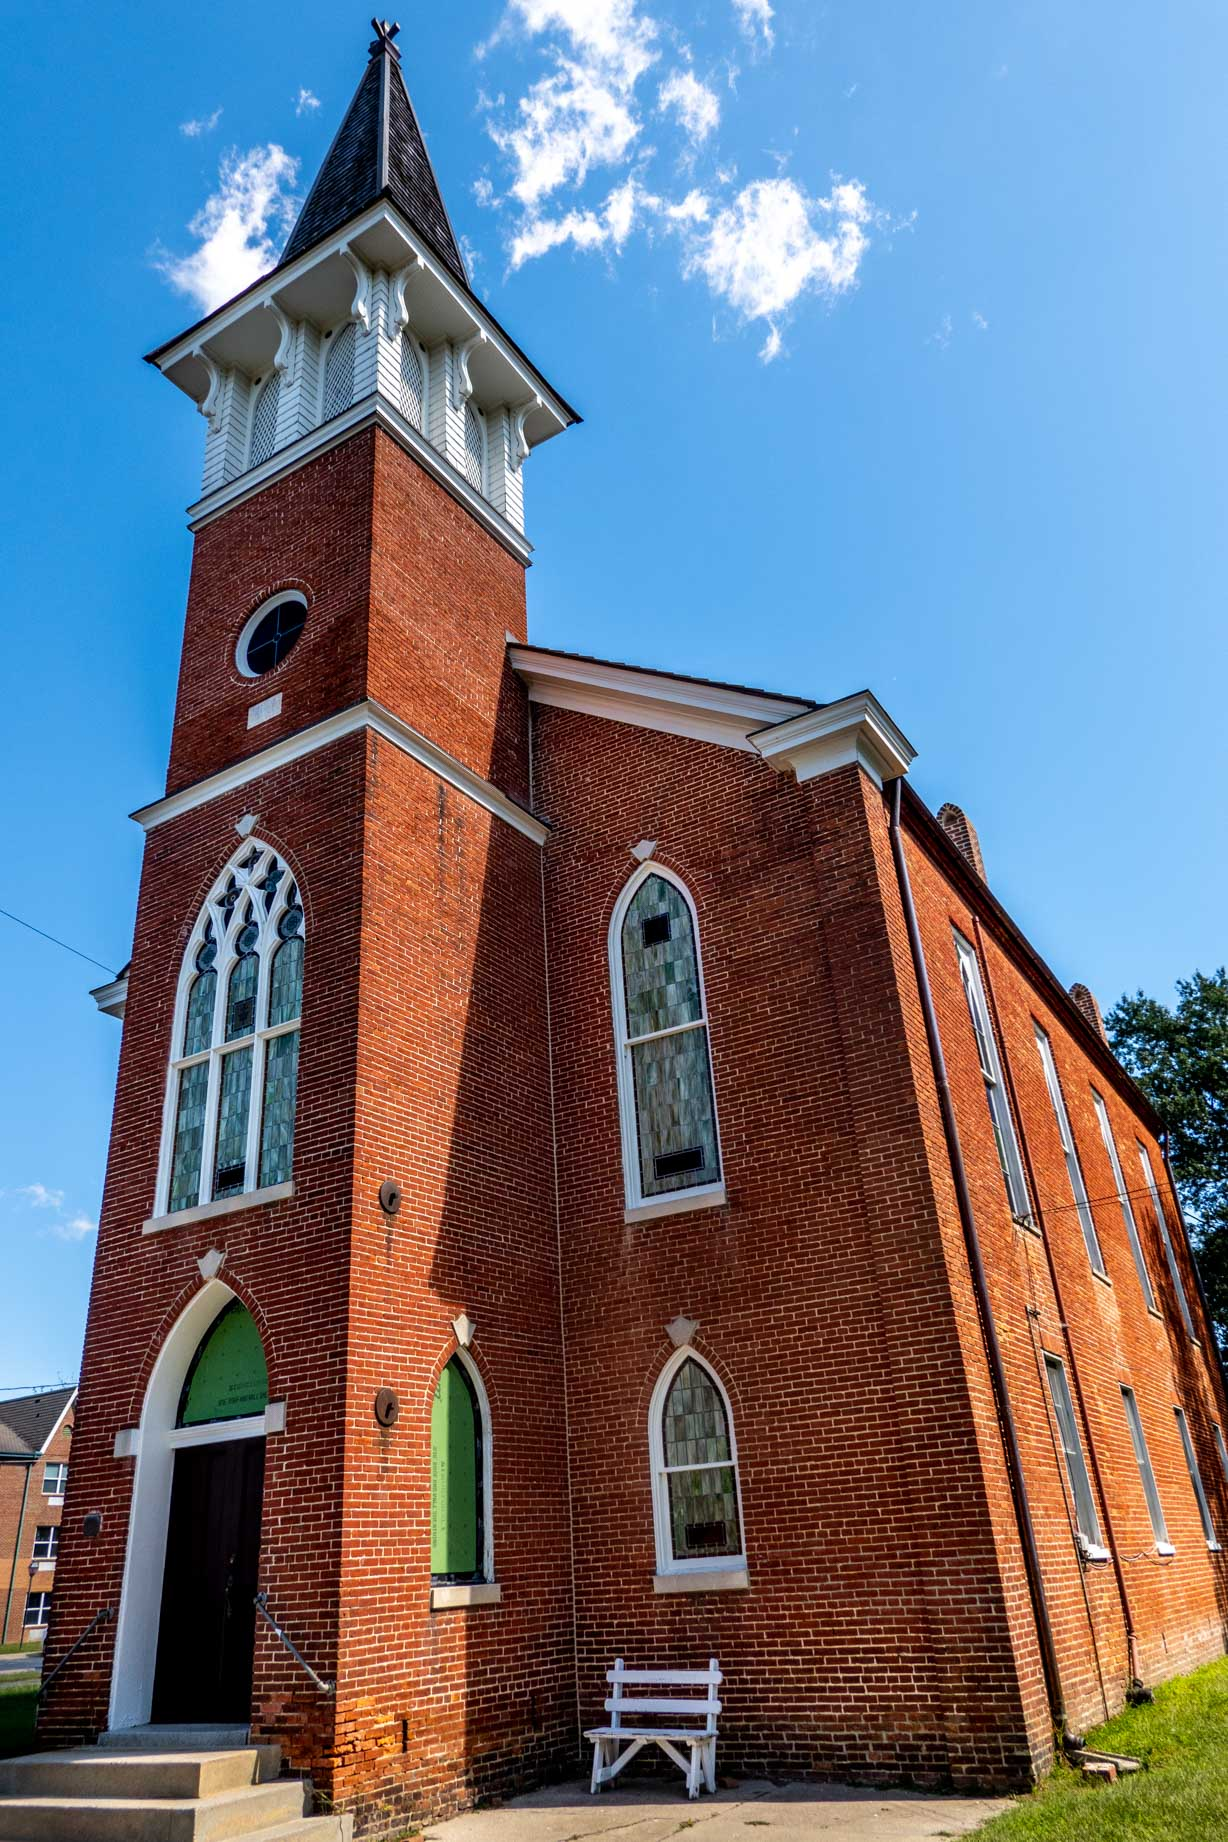 Red brick church with stained glass windows